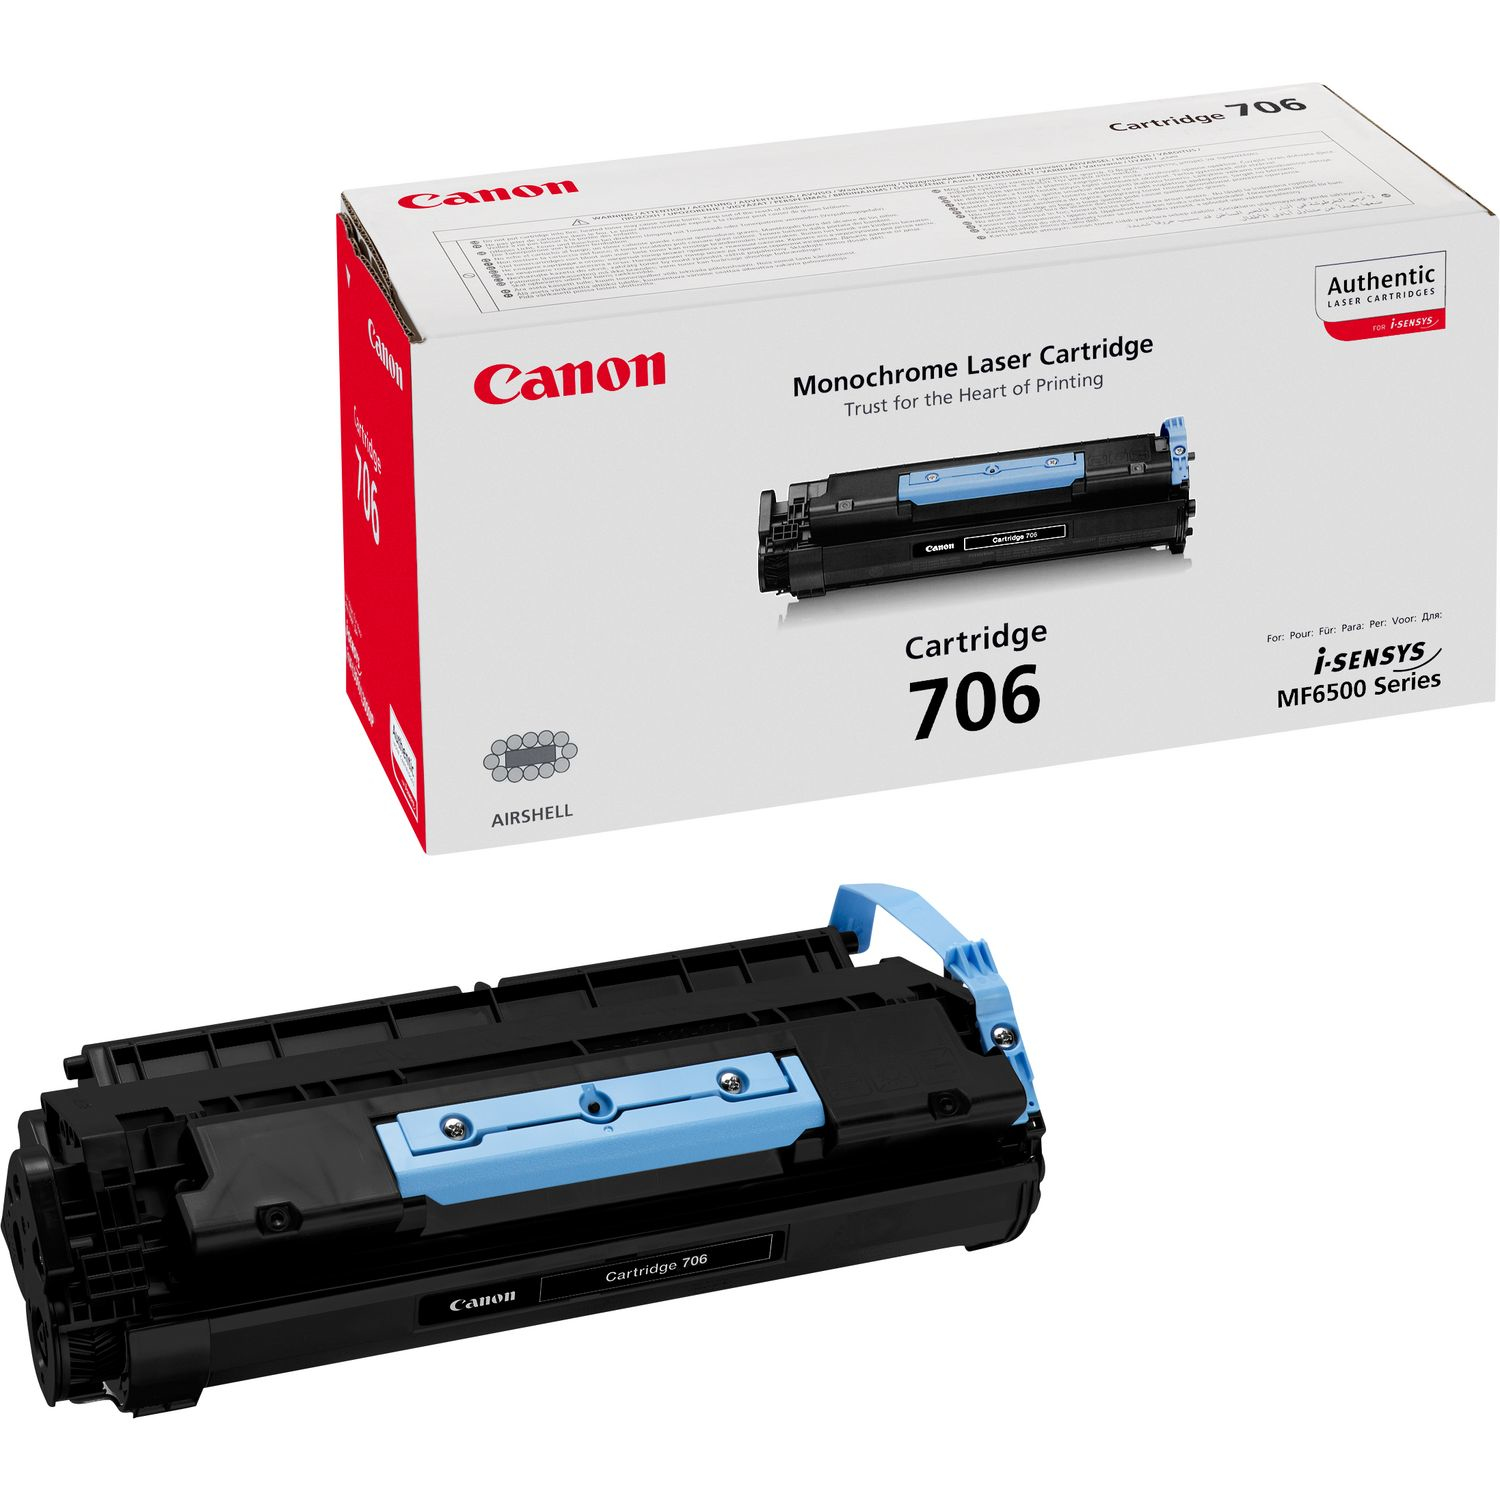 Remanufactured Canon Cartridge-706 Toner Cartridge Black 706 - rem01